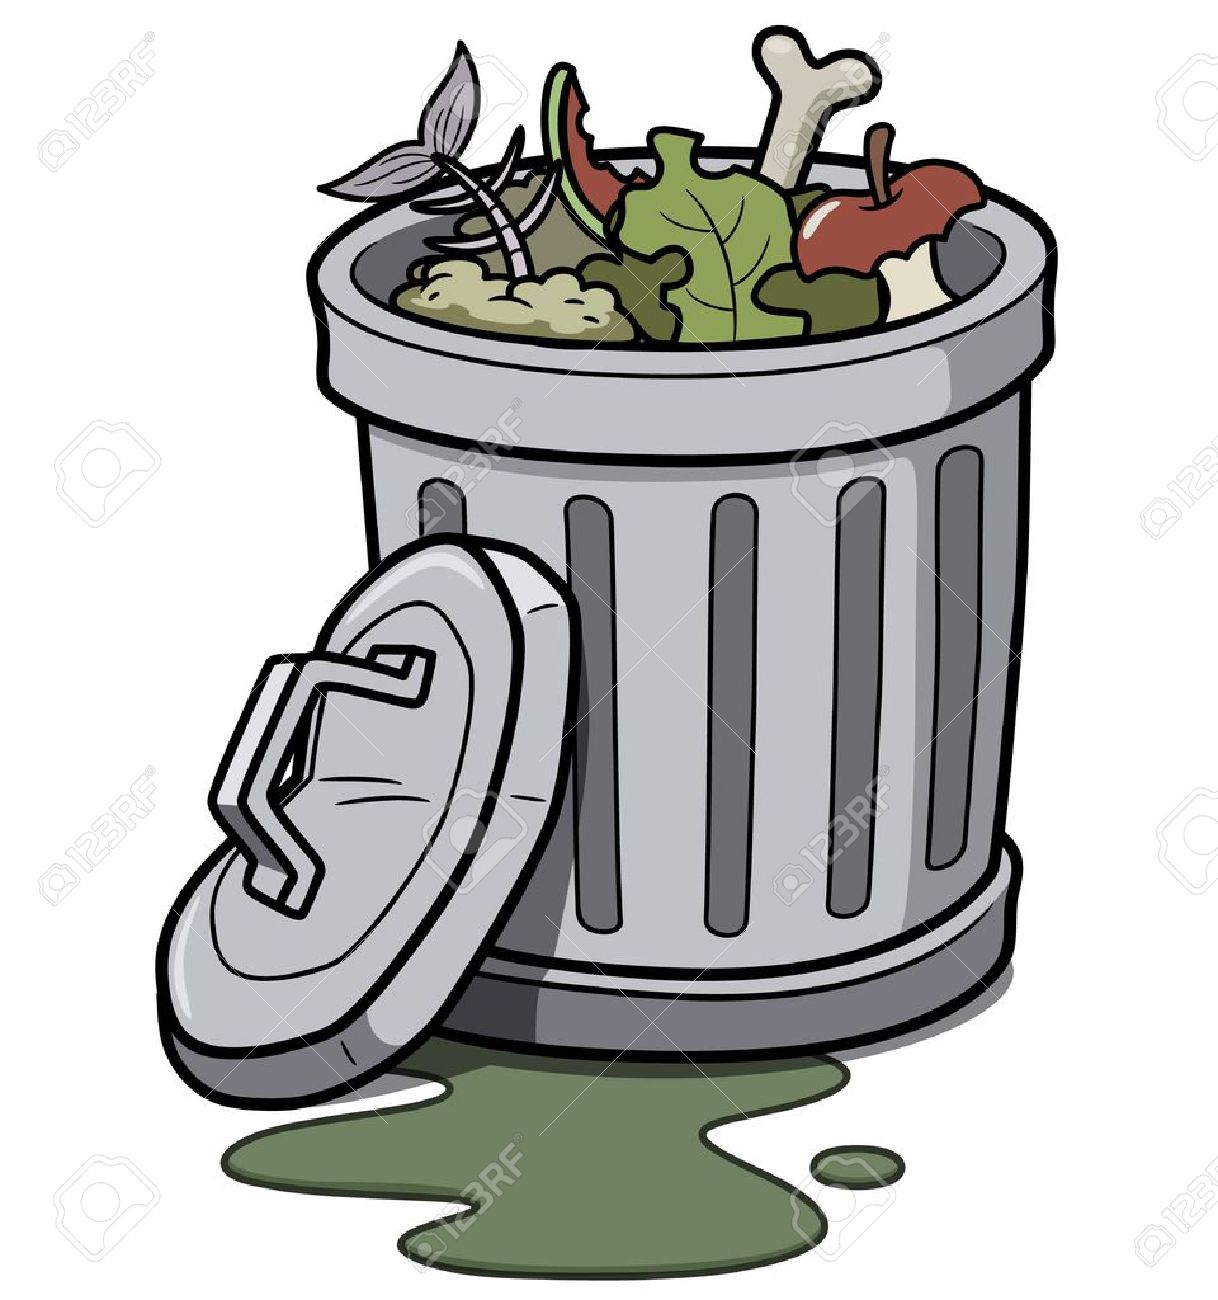 garbage can clipart 5 clipart station rh clipartstation com trash can clipart images trash can clipart images